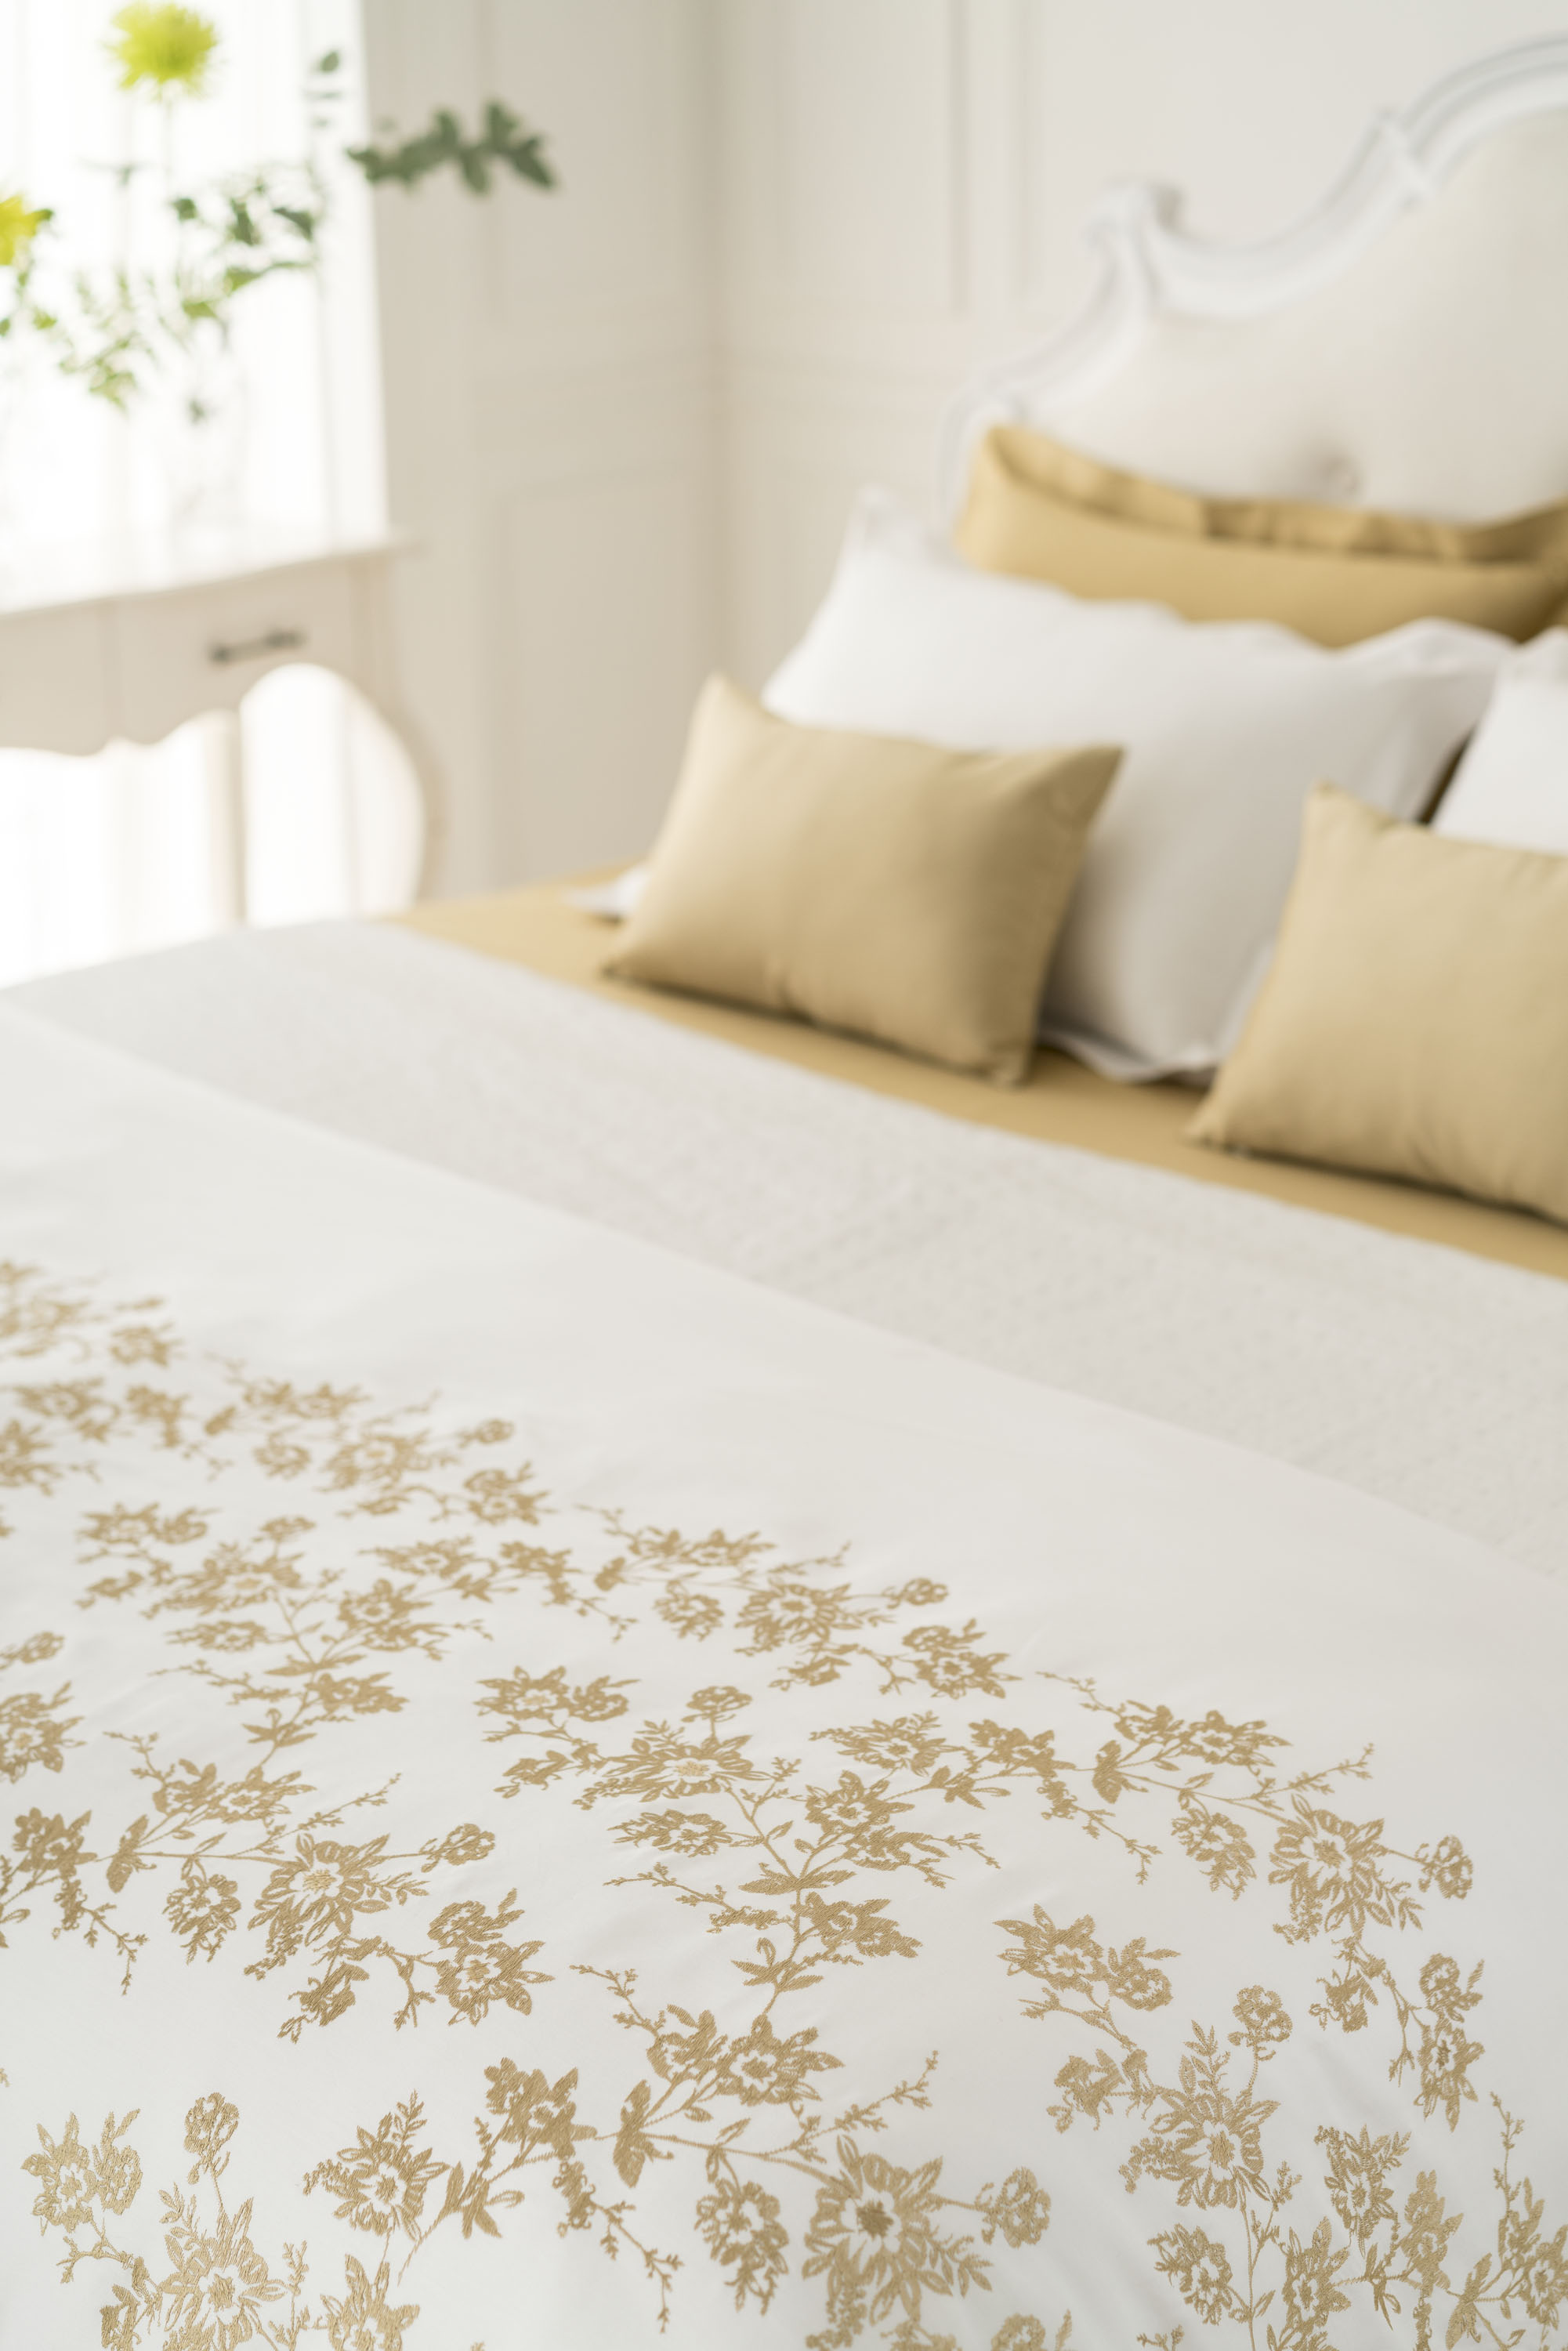 from digital printing techniques to finely embroidered handwork each designed bedding set that comes coordinated with crisp linens